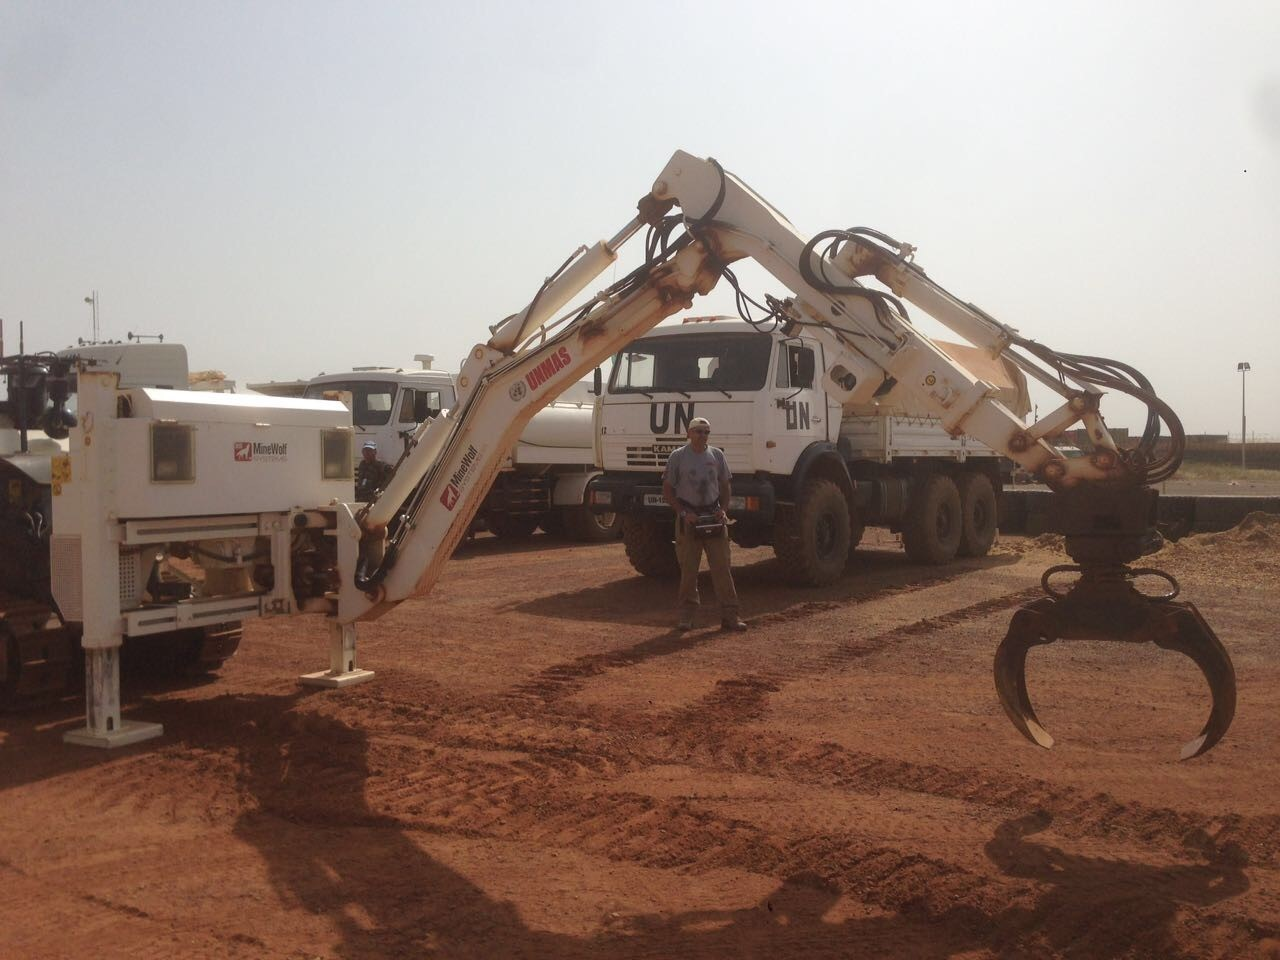 GCS maintained vehicle with robotic arm used in Mali EOD and C-IED operations